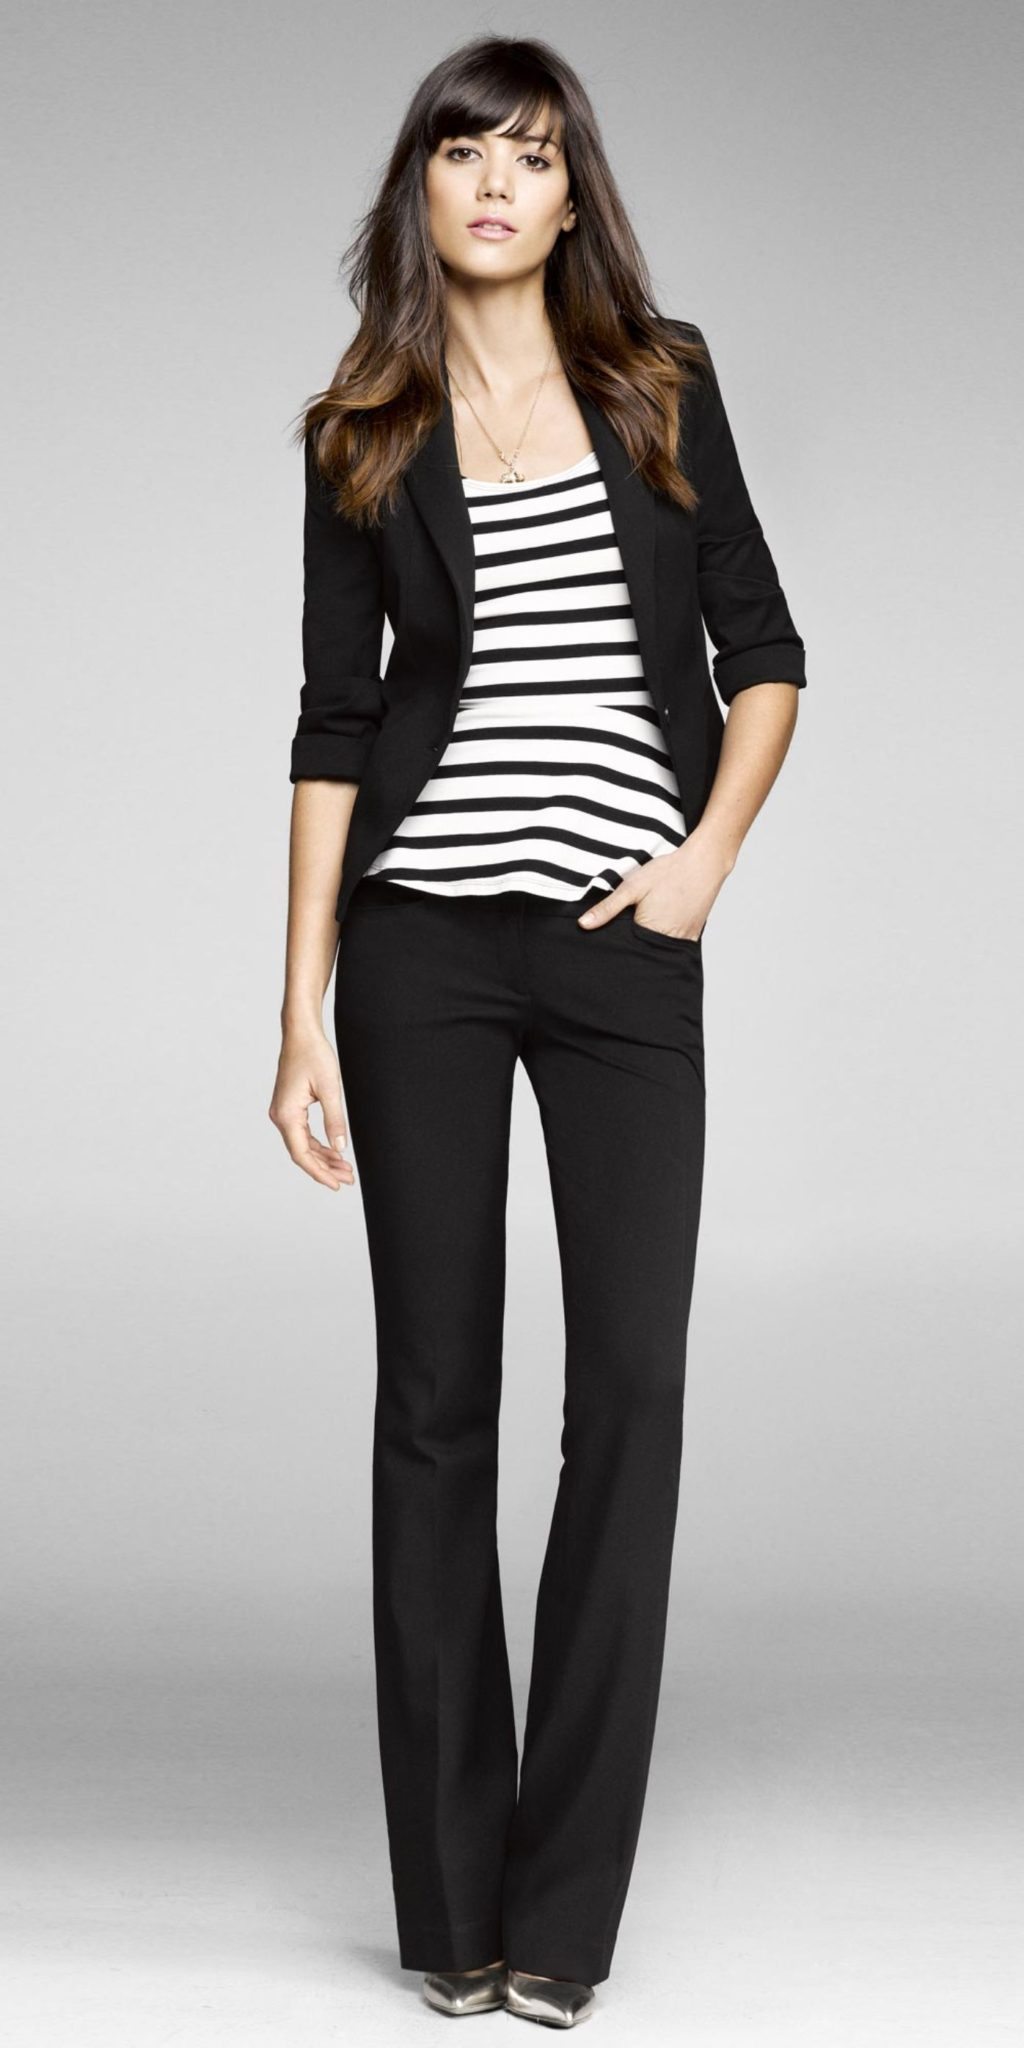 casual-suit.-1024x2048 +45 Stylish Women's Outfits for Job Interviews for 2020